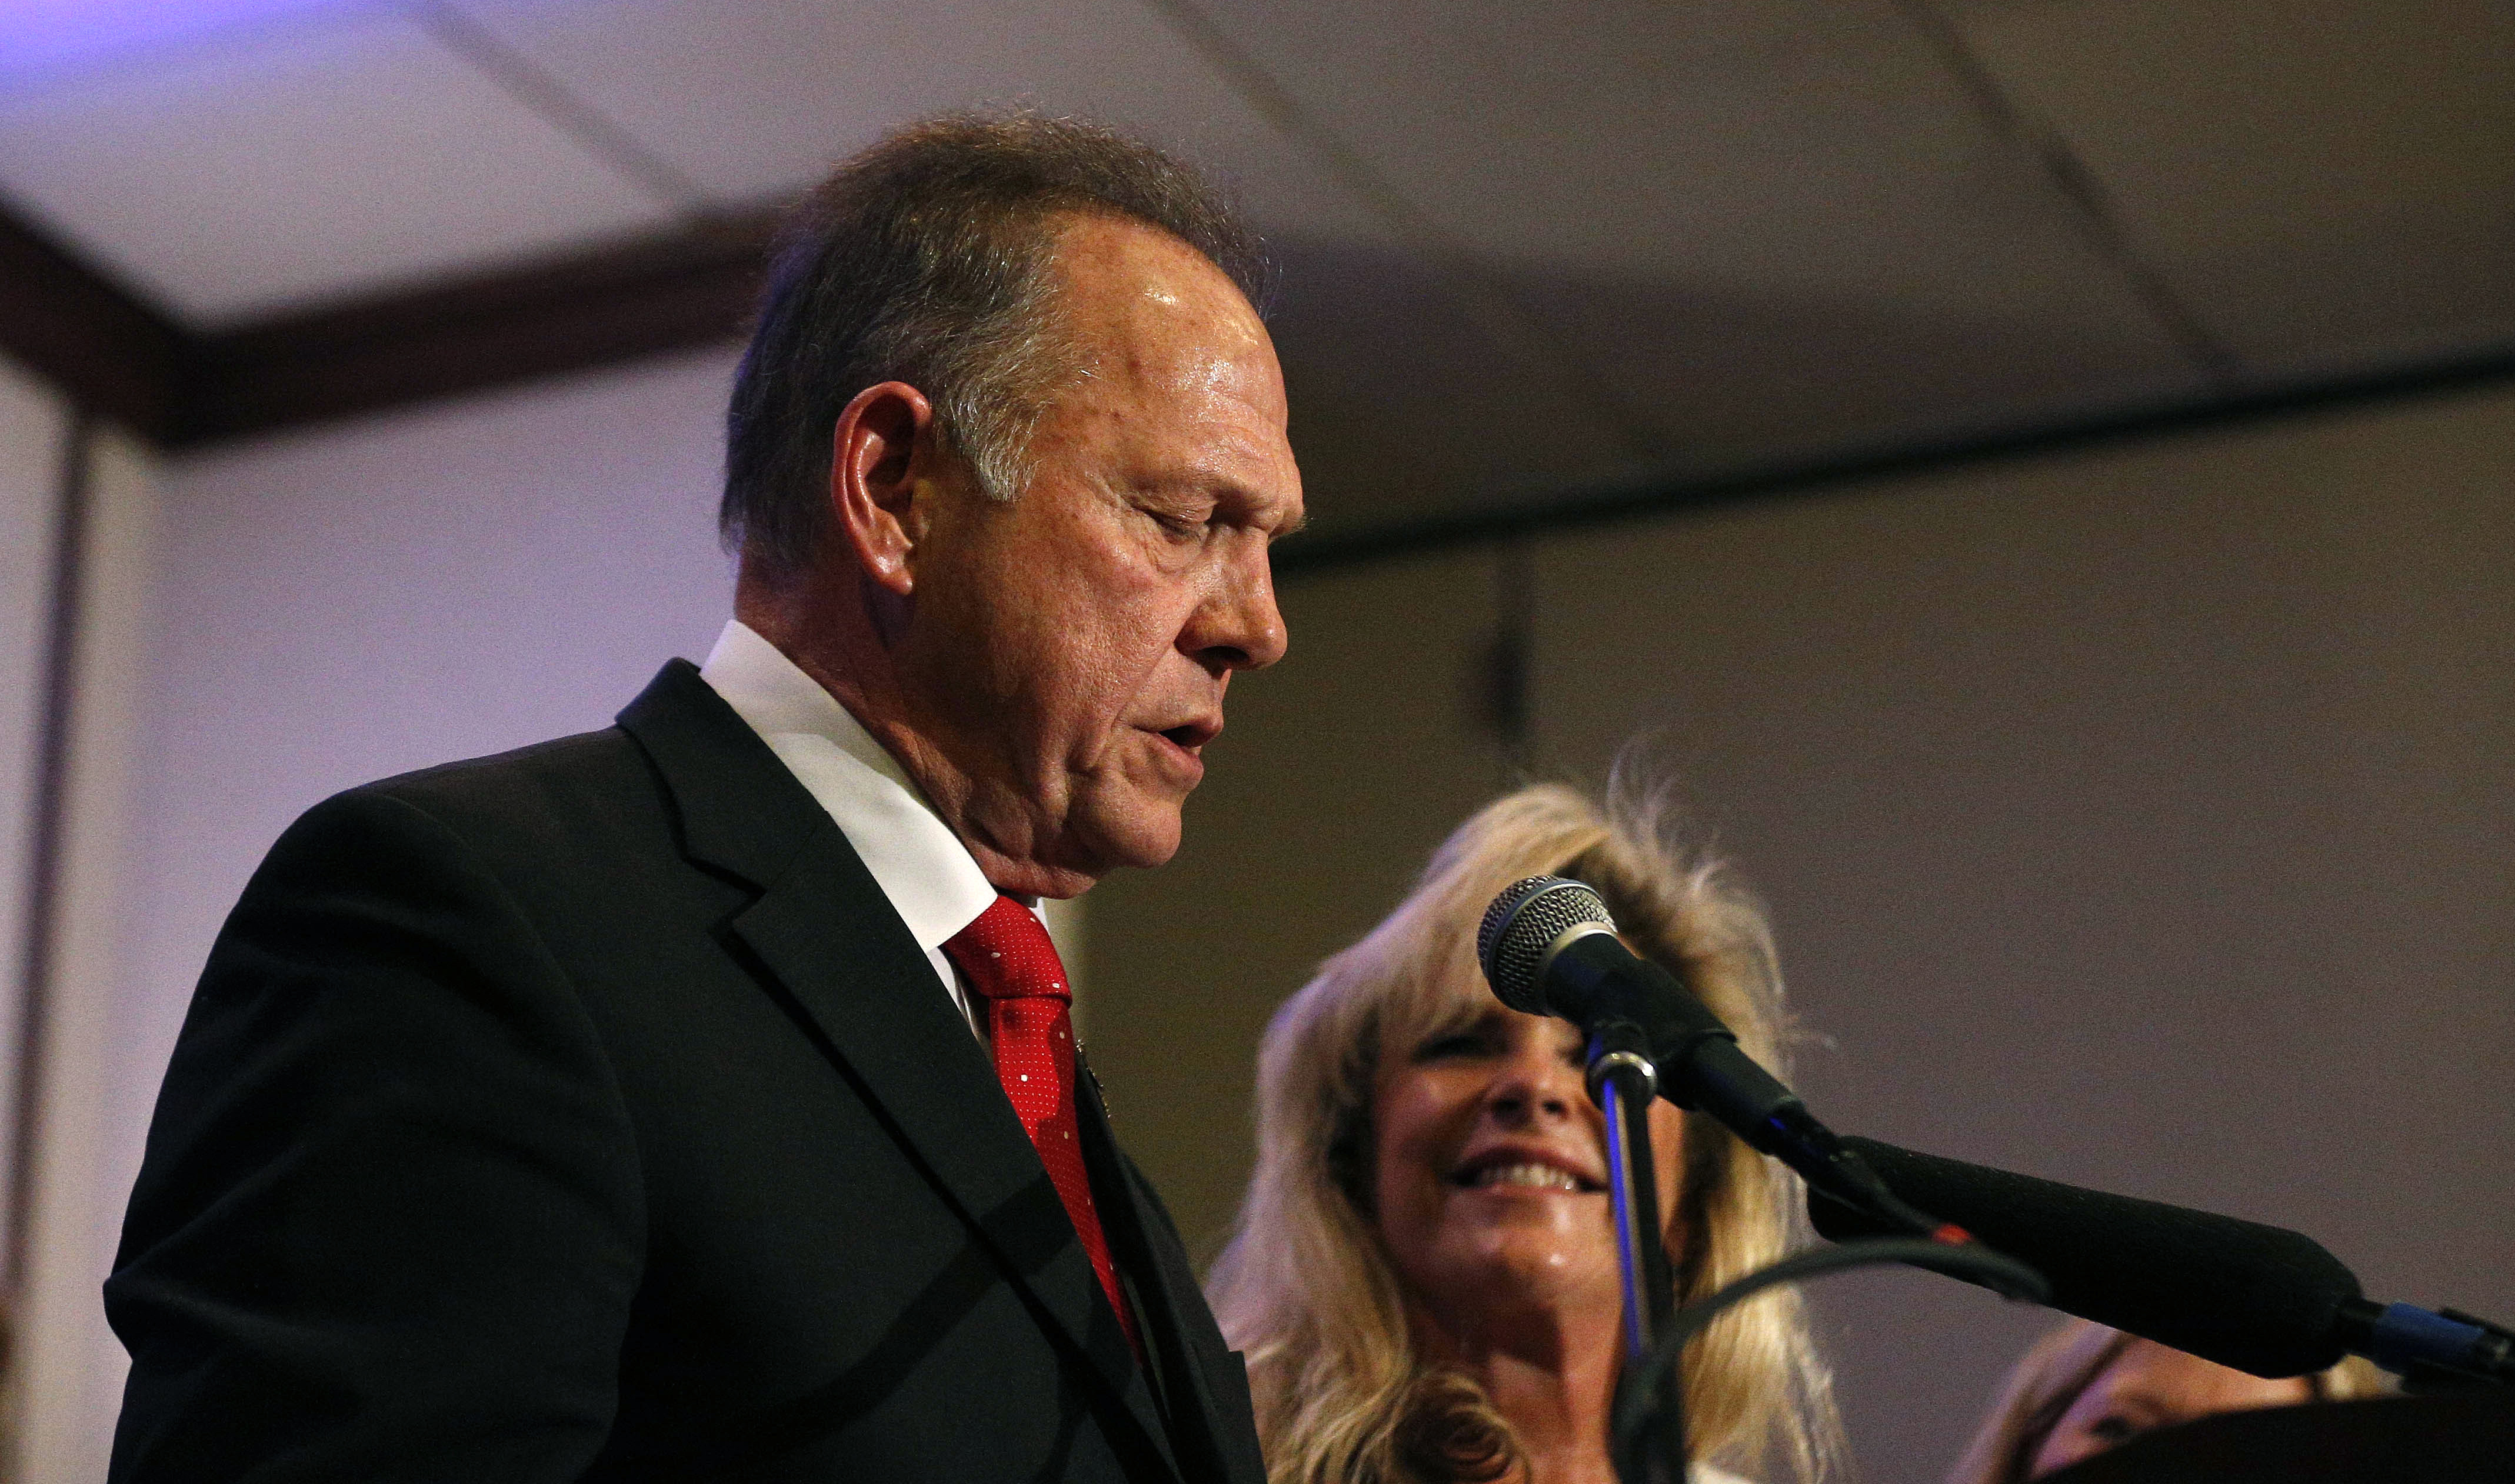 All hail Roy Moore at 'pro-family' rally, while accusations pile up